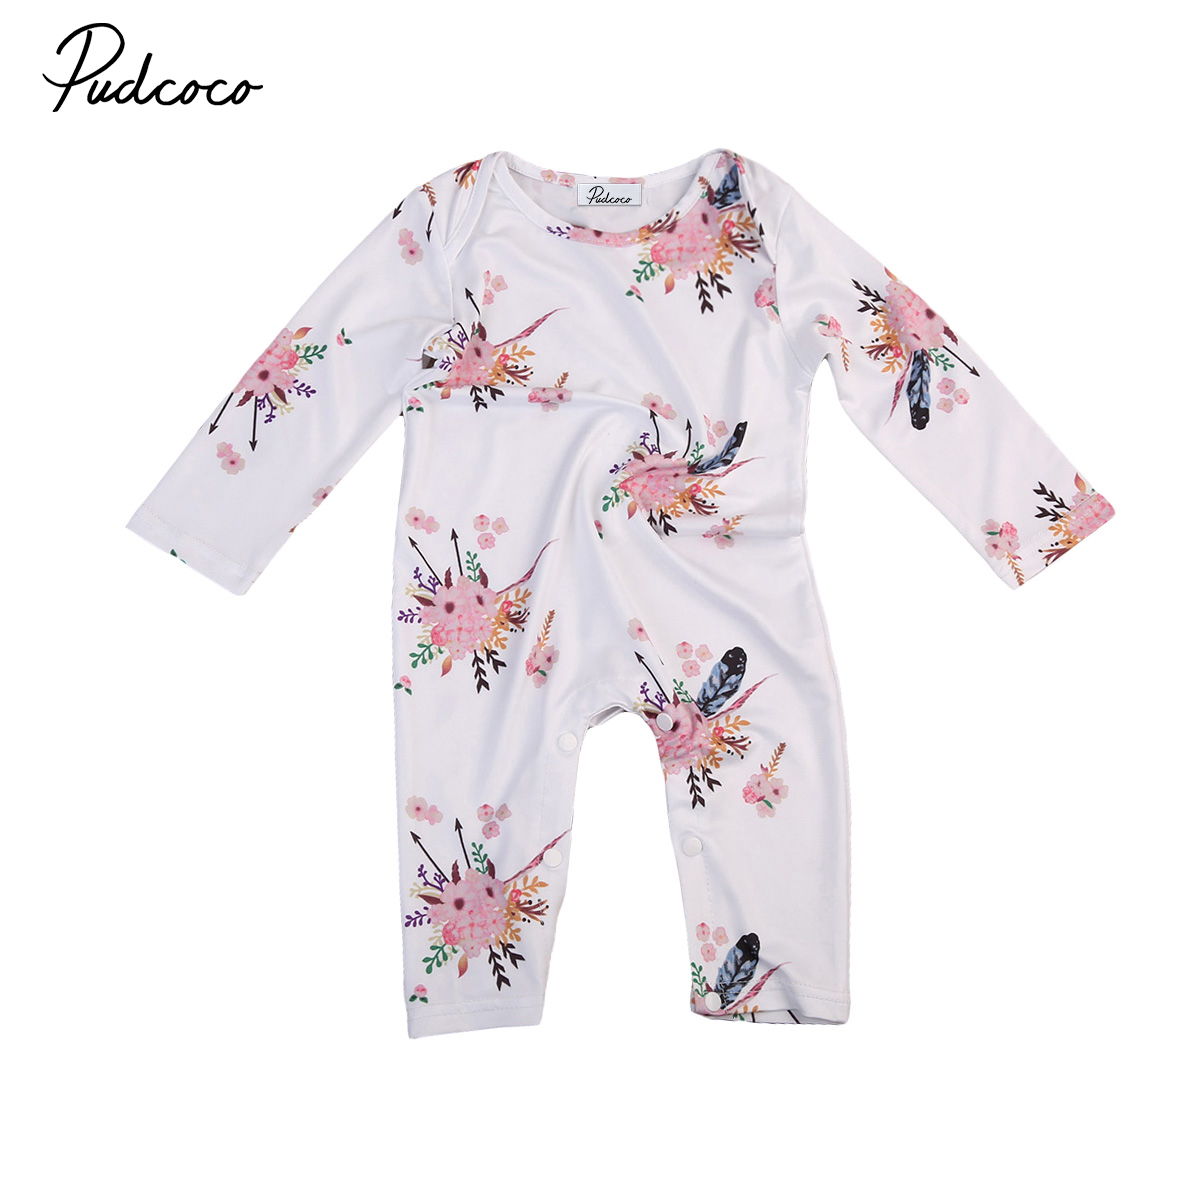 Autumn Warm Cloth Newborn Toddler Baby Kids Girls Infant Long Sleeve Cotton Romper Jumpsuit Girl Floral Romper Outfit Sets 0-24M